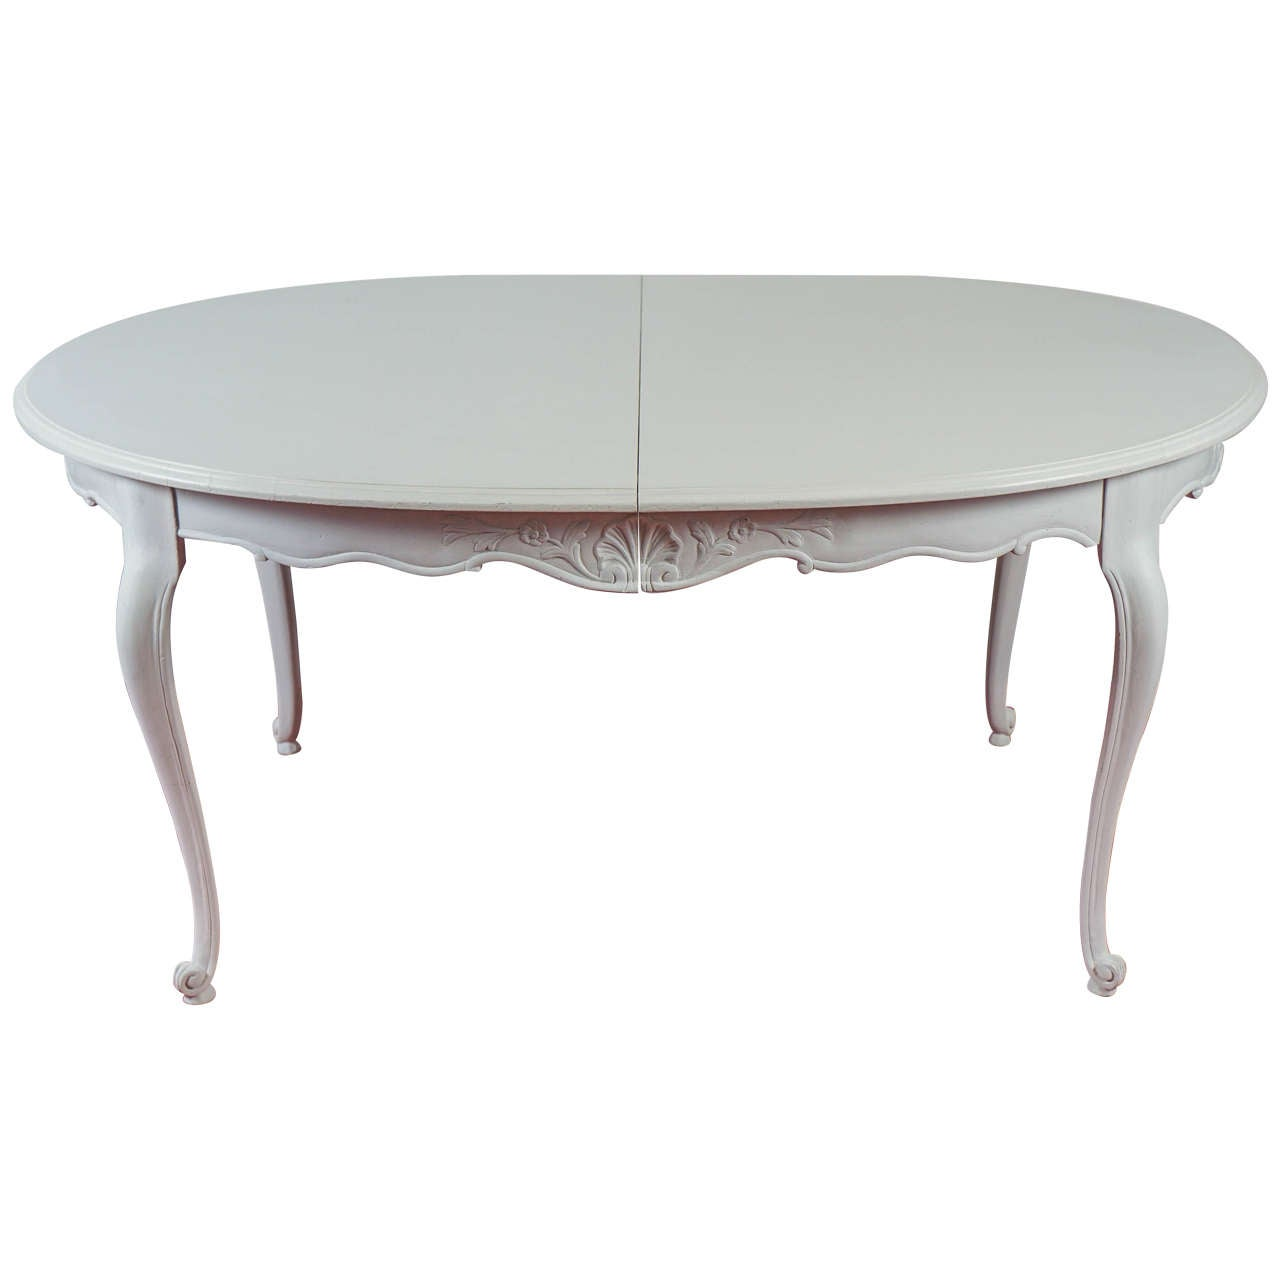 Louis xv style oval dining table at 1stdibs - Table louis xv ...